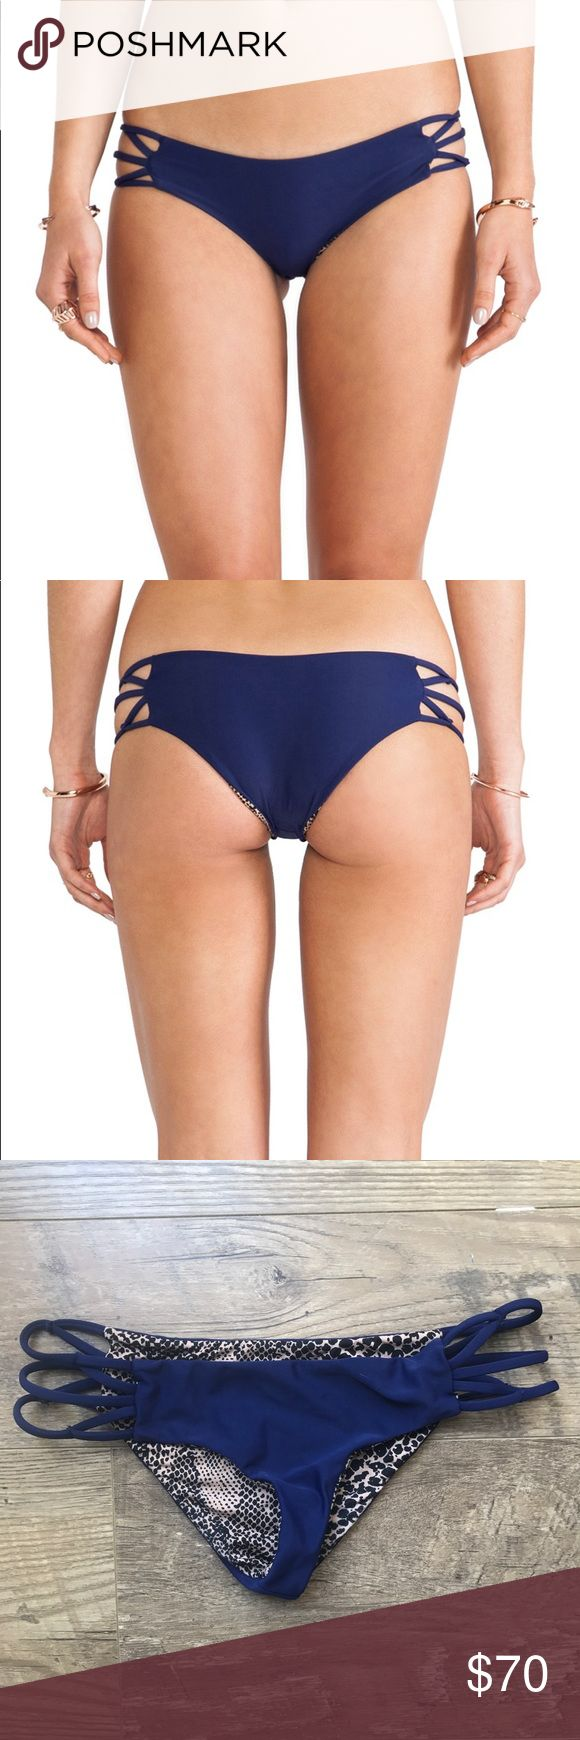 ACACIA BIKINI BOTTOMS (navy blue) So cute! Theses are so comfortable and compliments the body so nicely. acacia swimwear Swim Bikinis